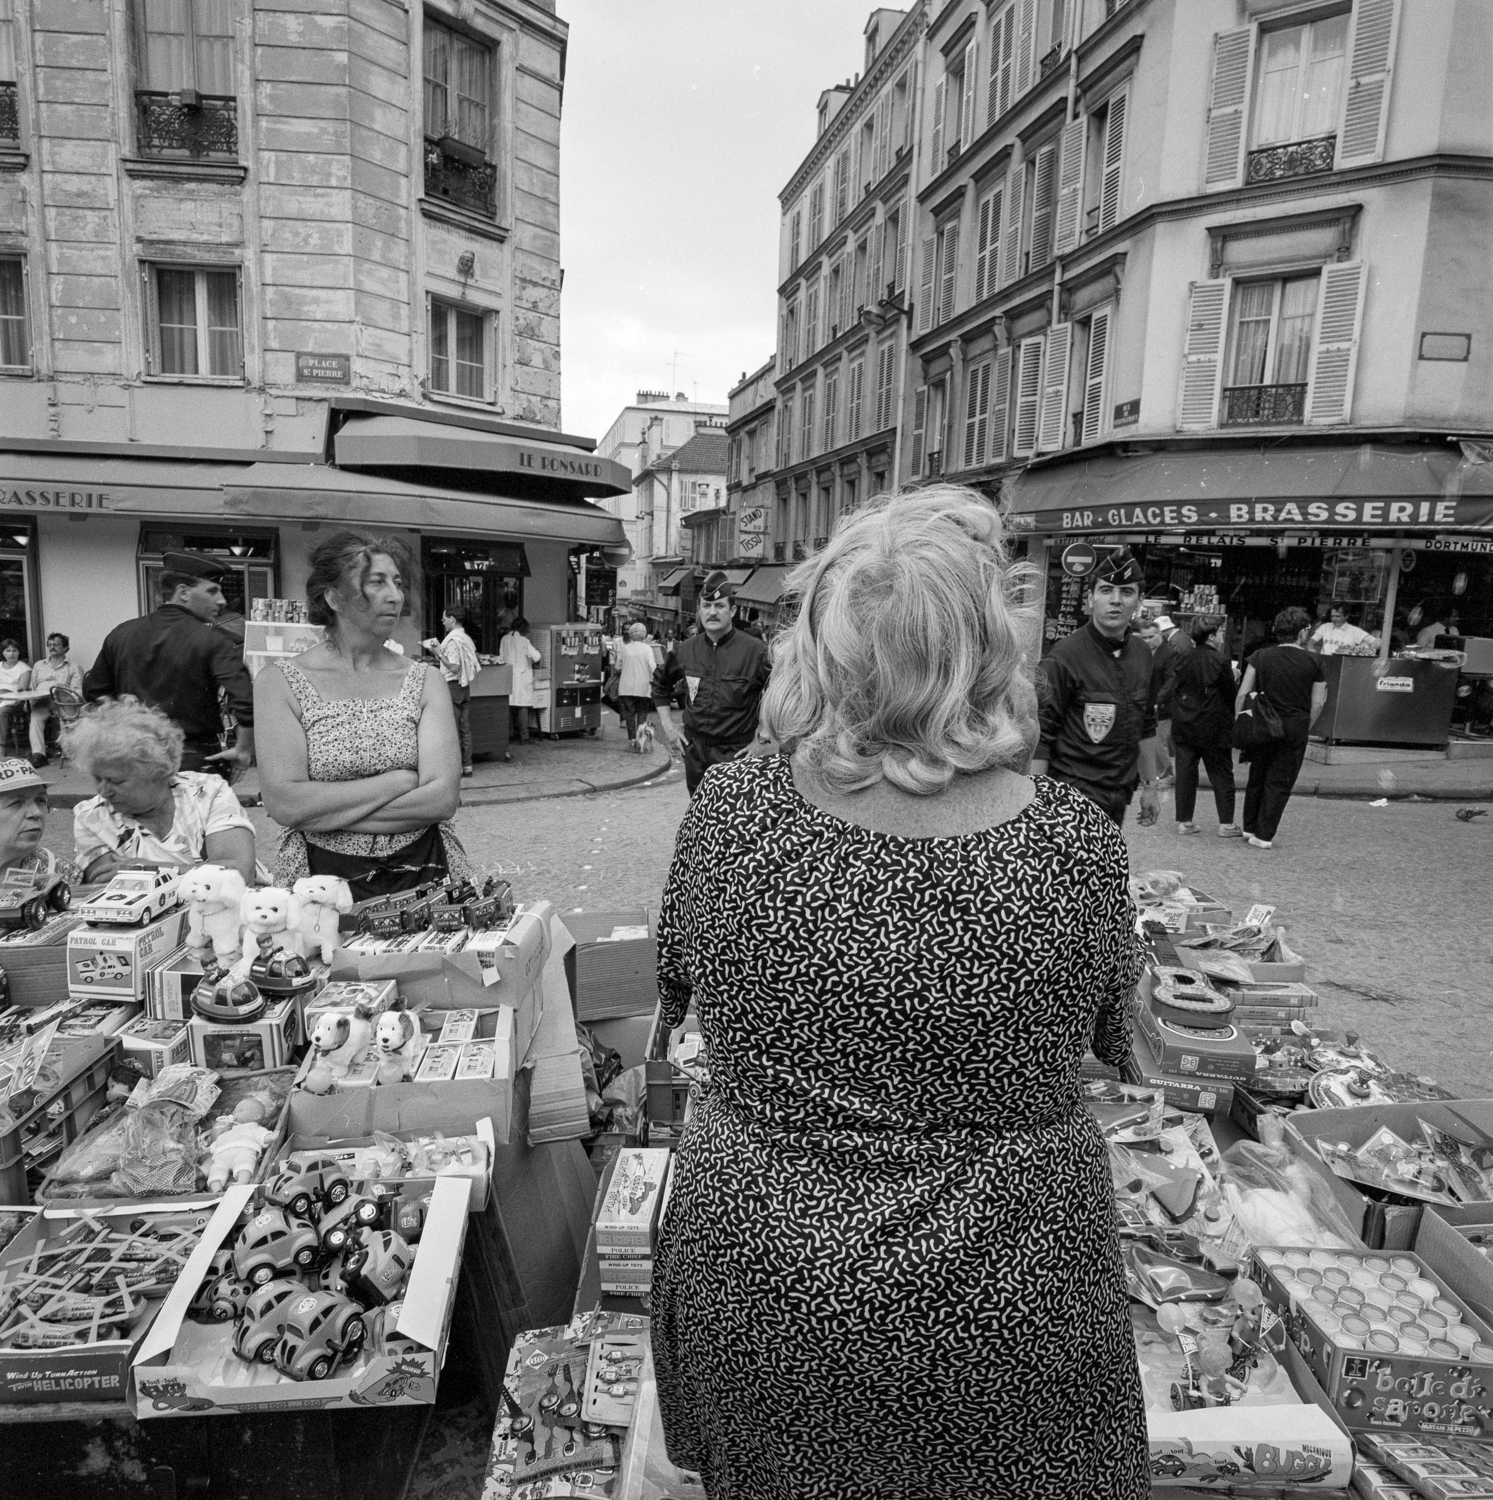 Vendor Pigalle with French National Police Paris 1985